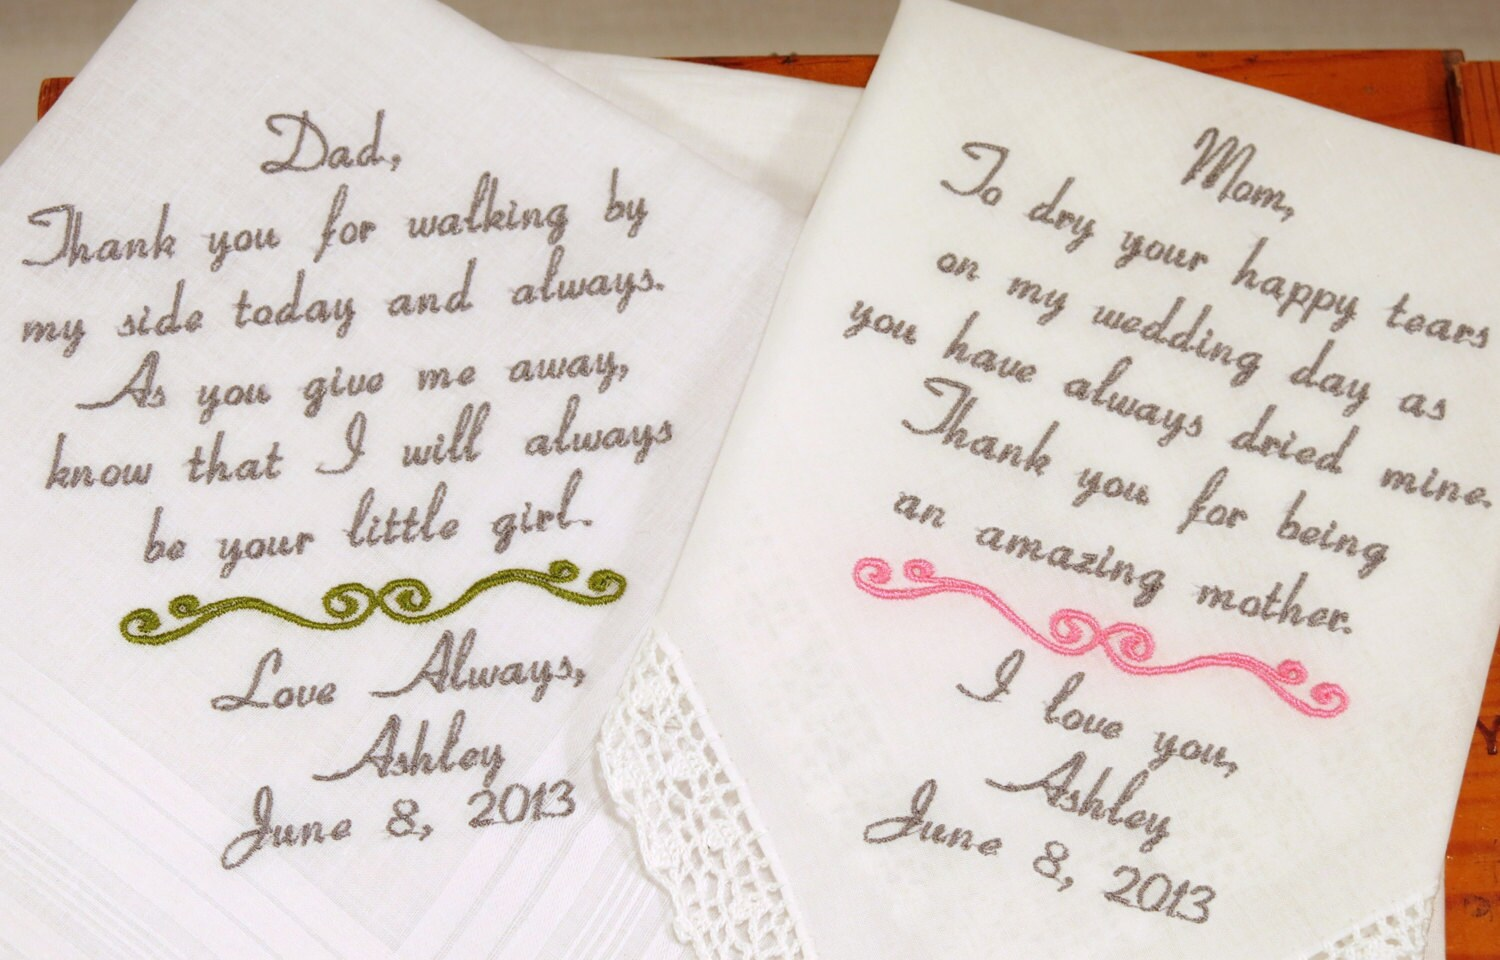 Wedding Handkerchiefs For The Family: Embroidered Wedding Handkerchiefs Set Of 2 For Mom And Dad